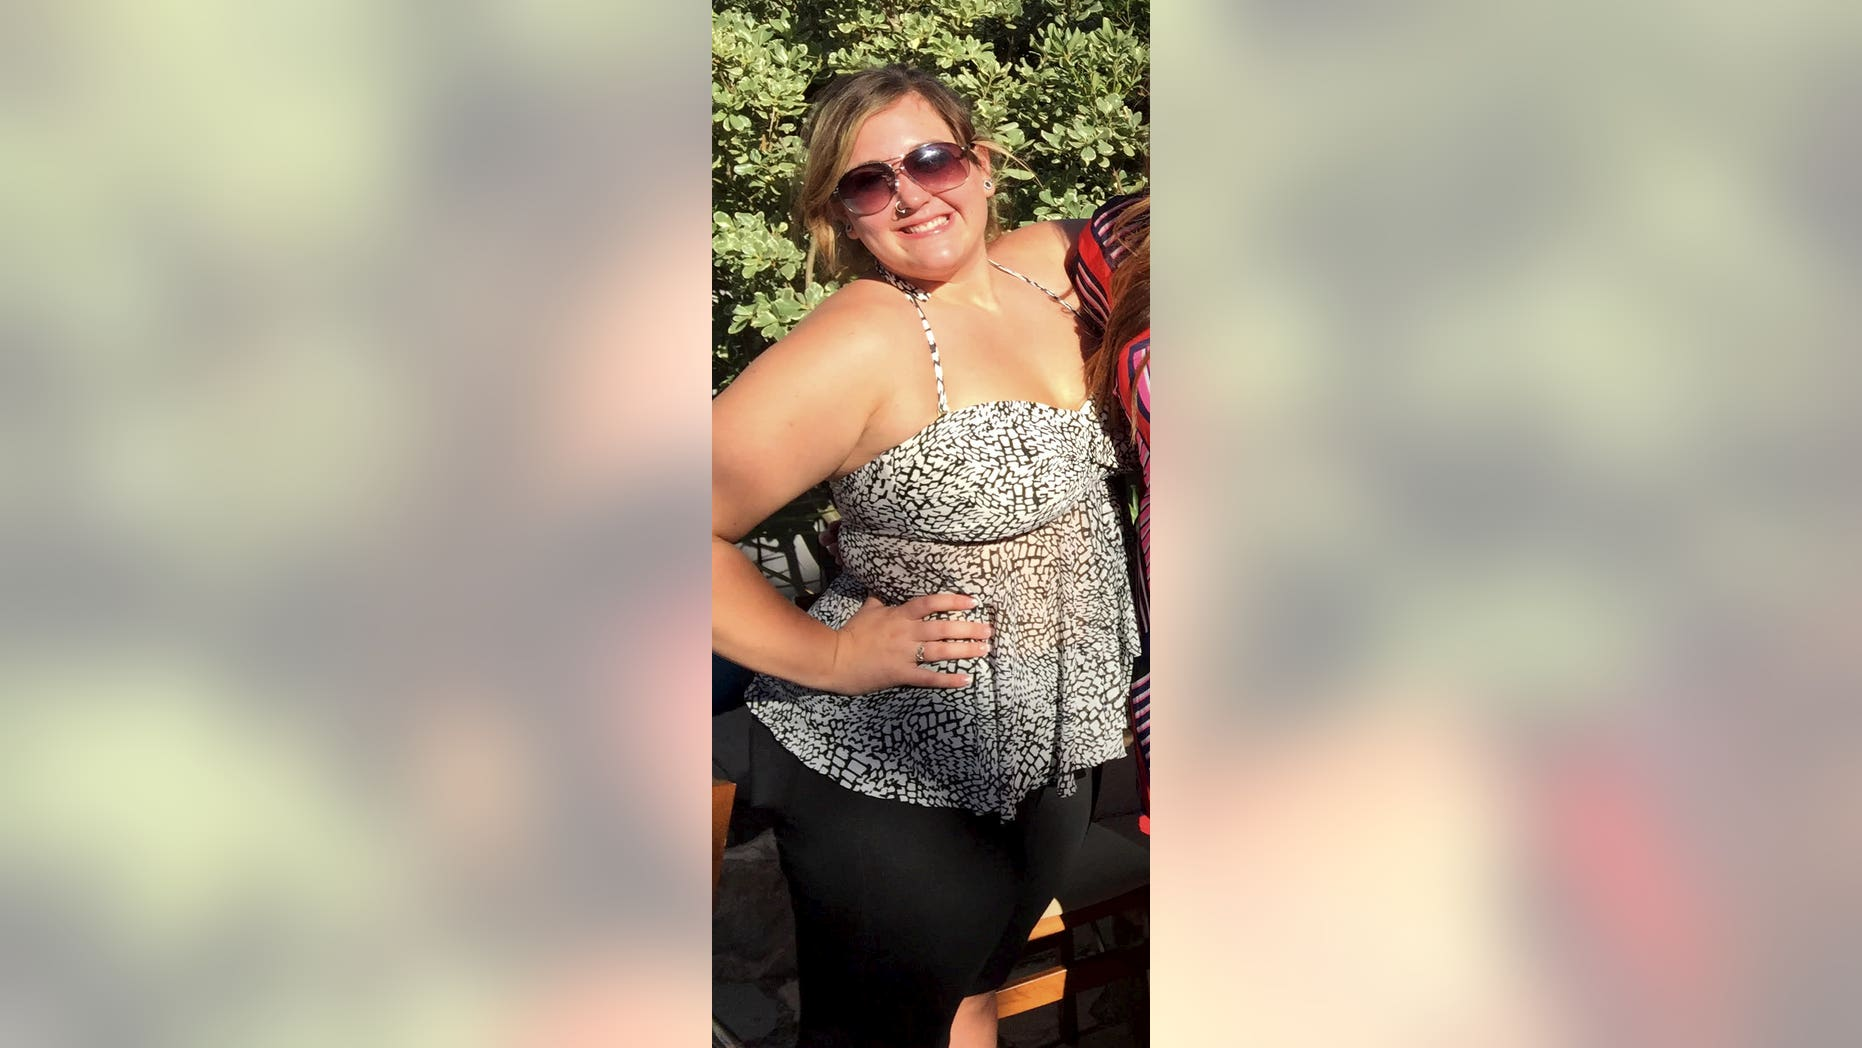 Vivian McCall weighed 273 pounds in September 2019, and knew something had to change when she struggled to get comfortable in an airplane seat during a trip to California. (SWNS)